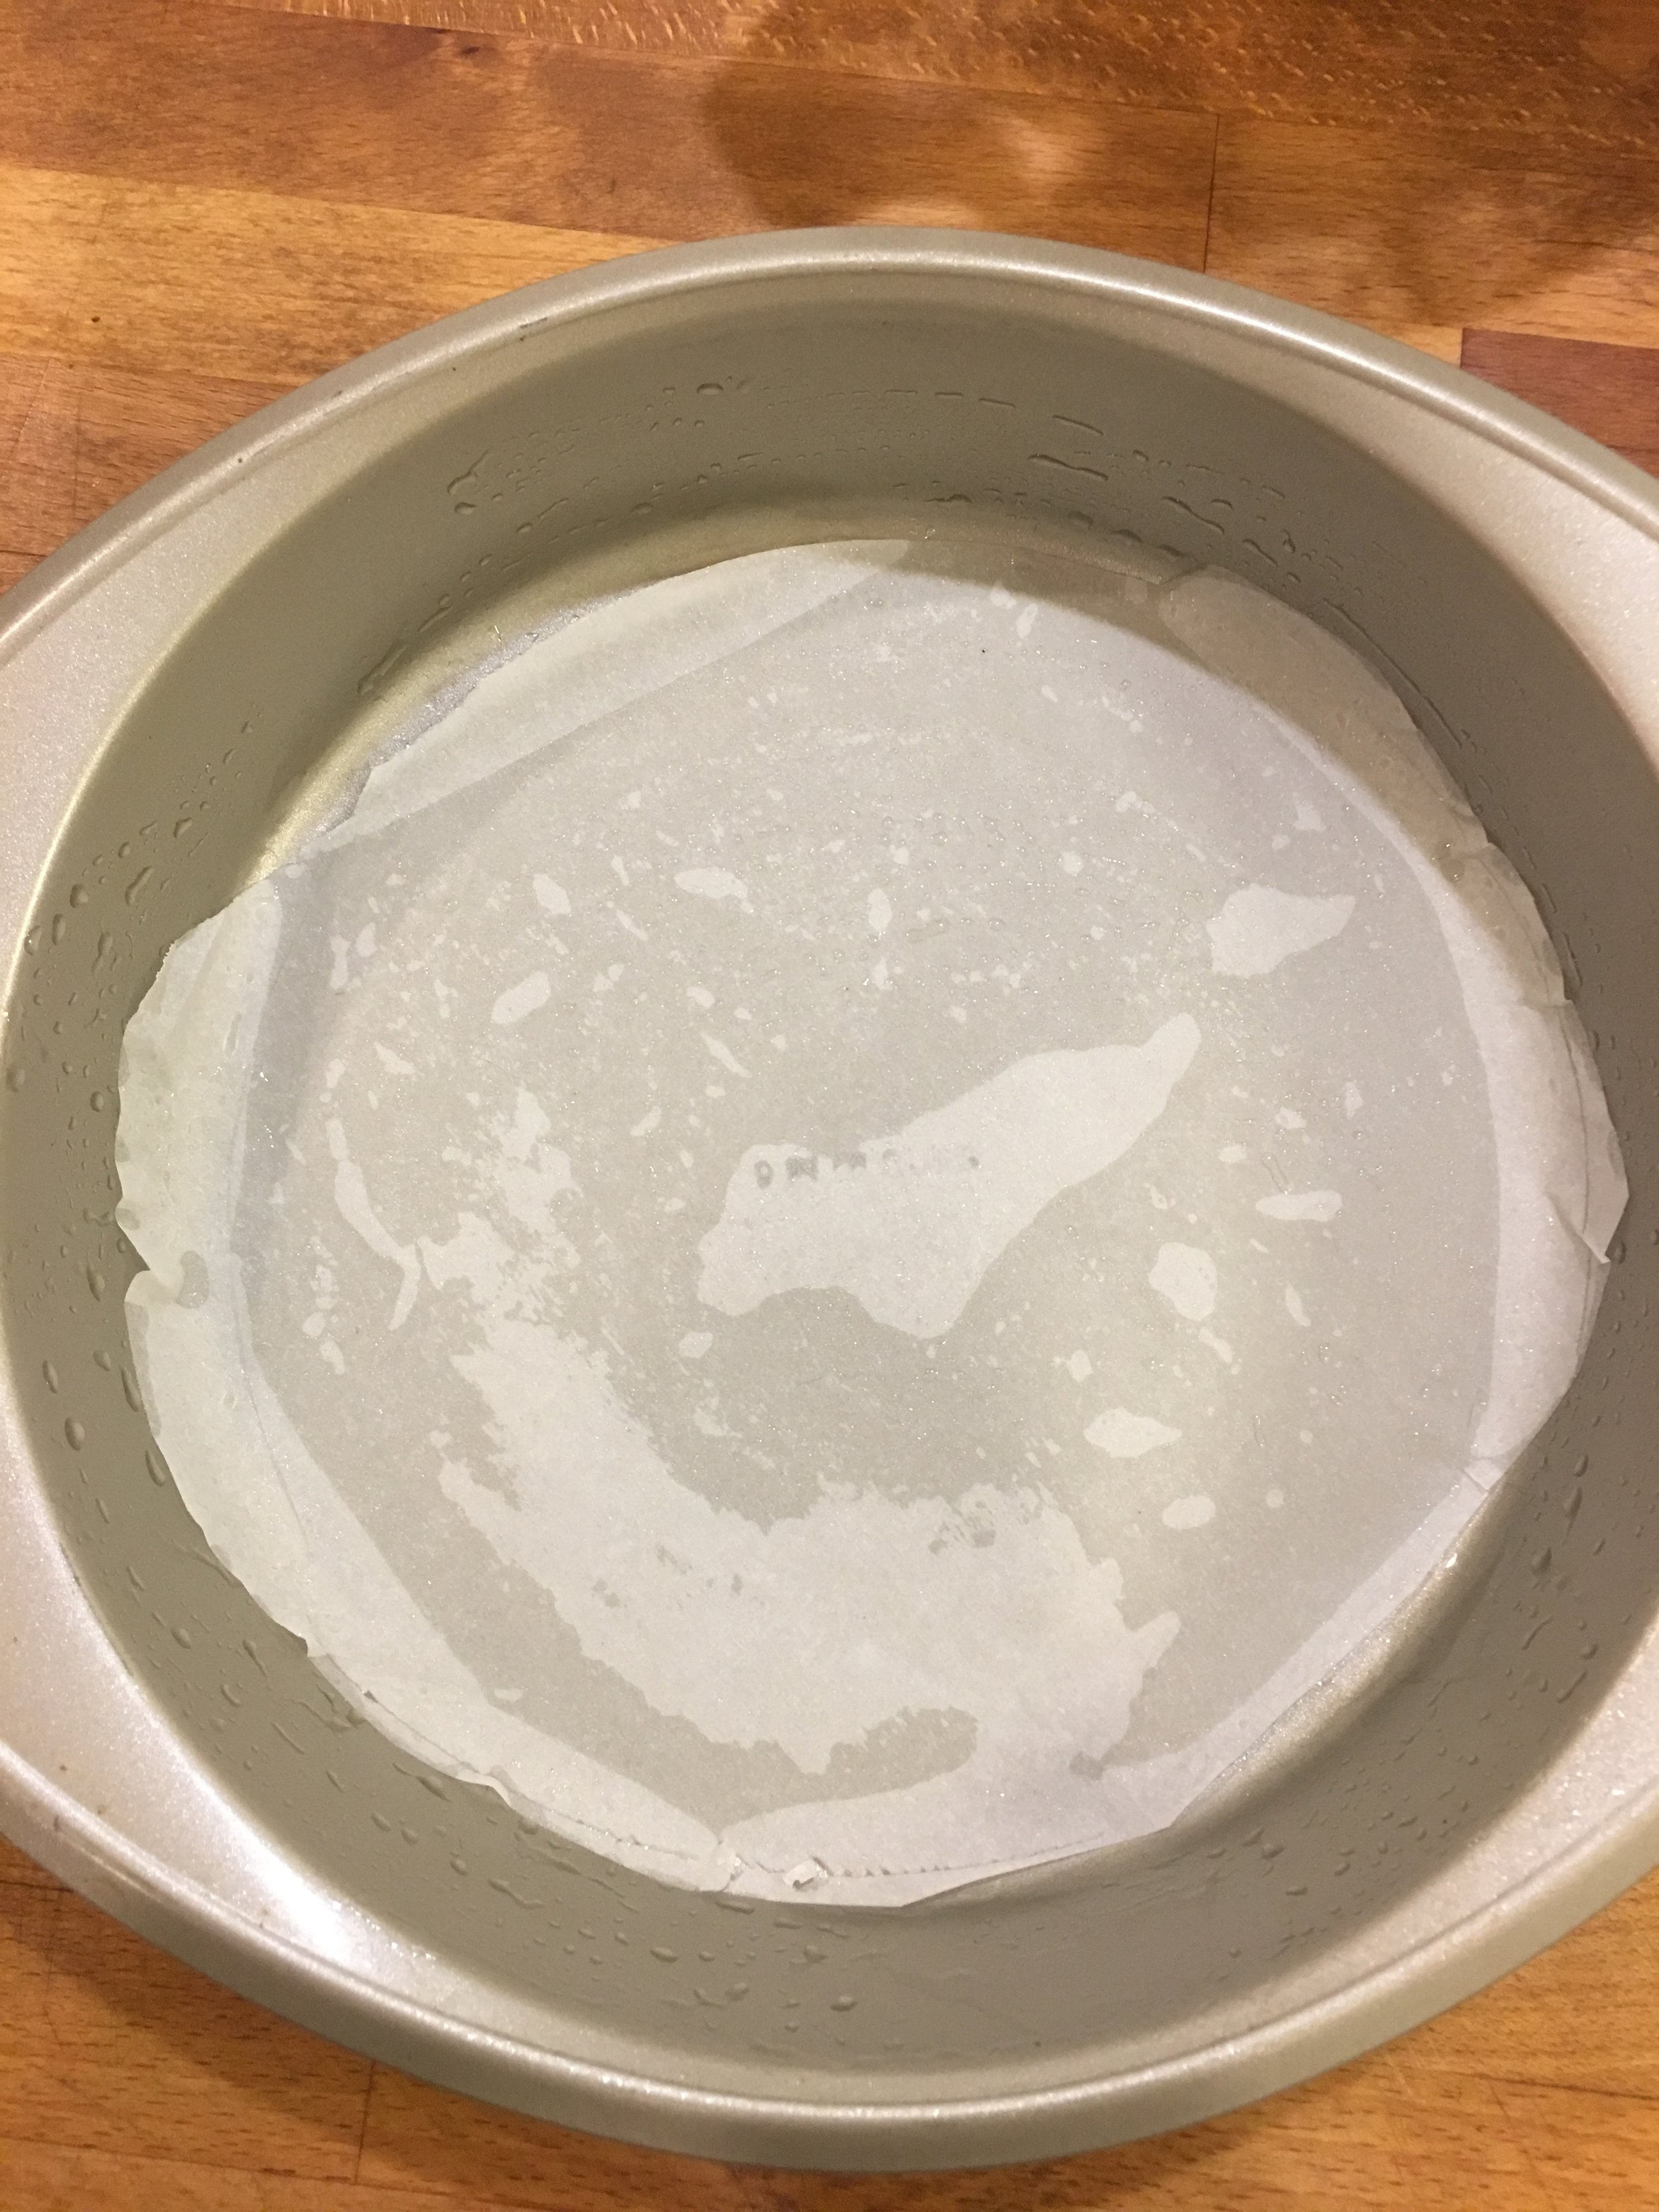 I was sloppy with my cutting. I didn't want to draw on the paper, but it was actually helpful to have the paper go past the bottom crease of the pan.